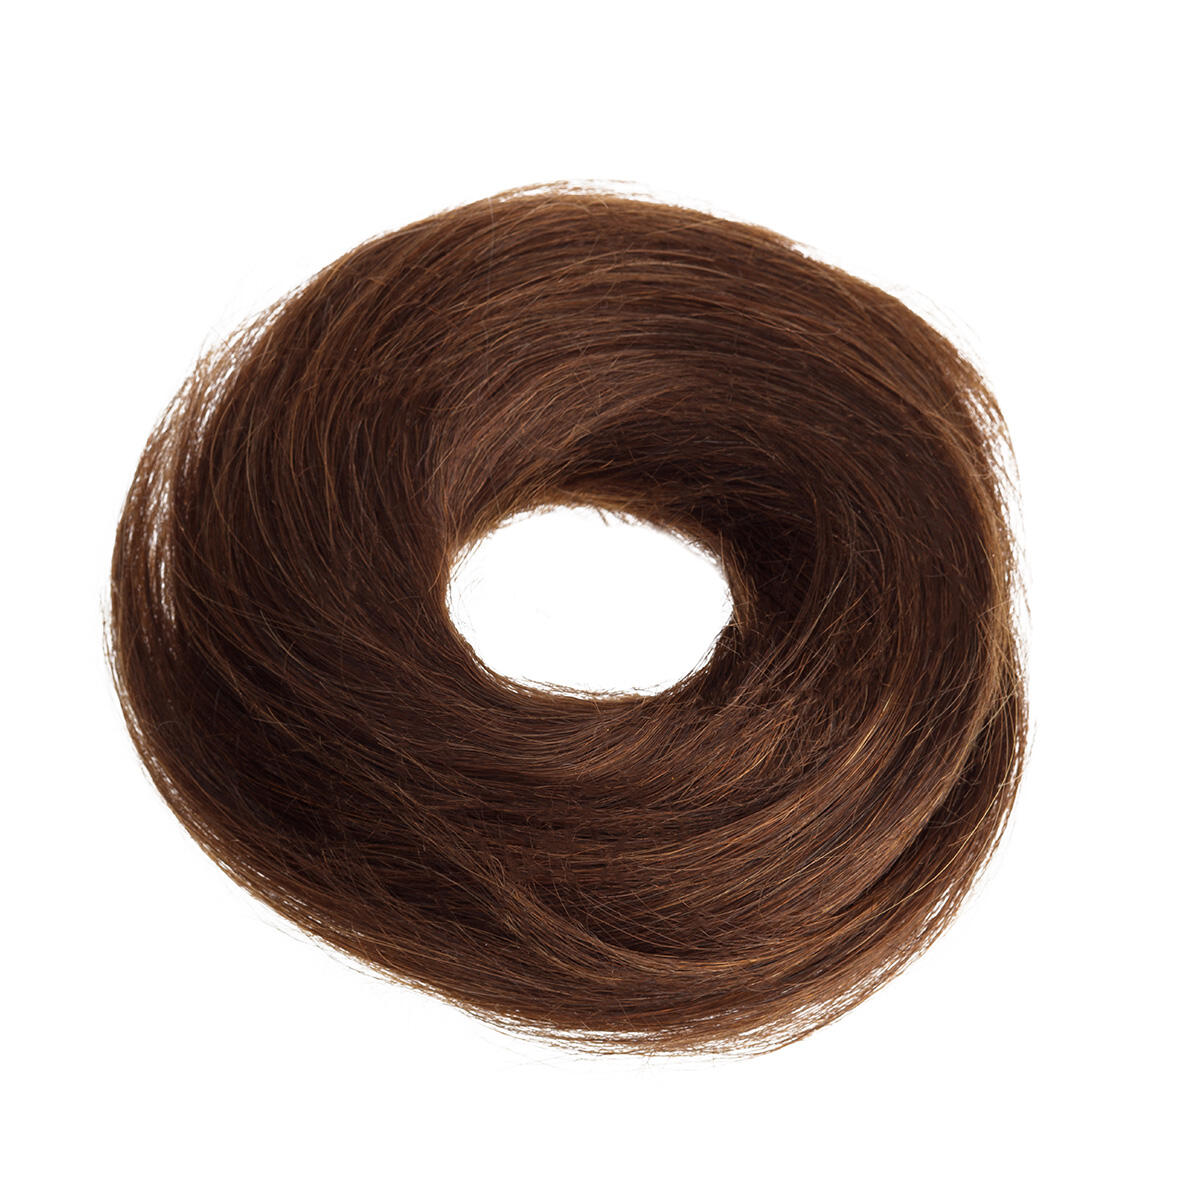 Volume Hair Scrunchie Original 40 g 2.0 Dark Brown 0 cm